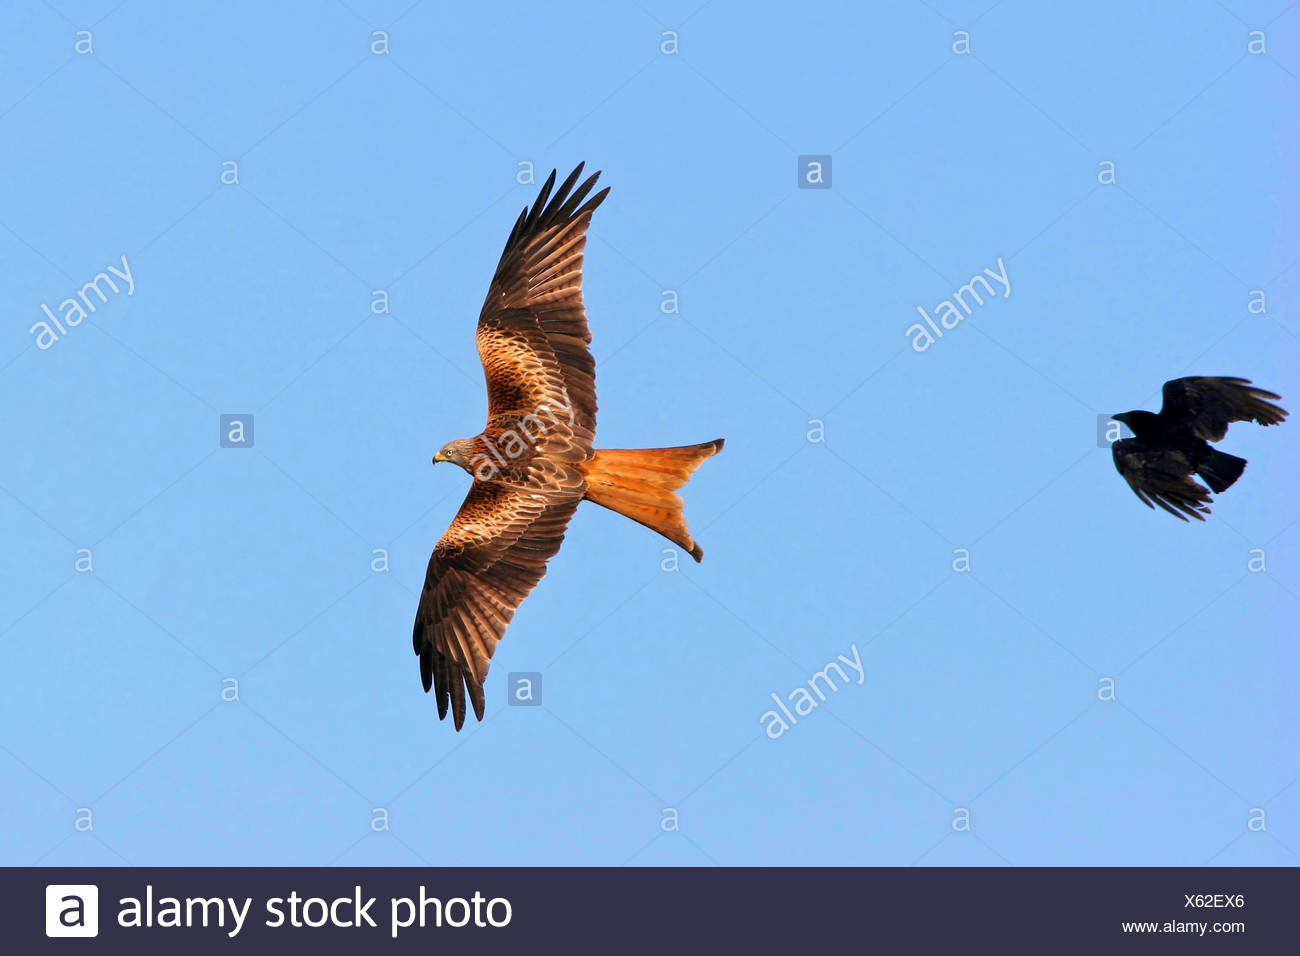 red kite (Milvus milvus), persecuted by a crow, Europe - Stock Image